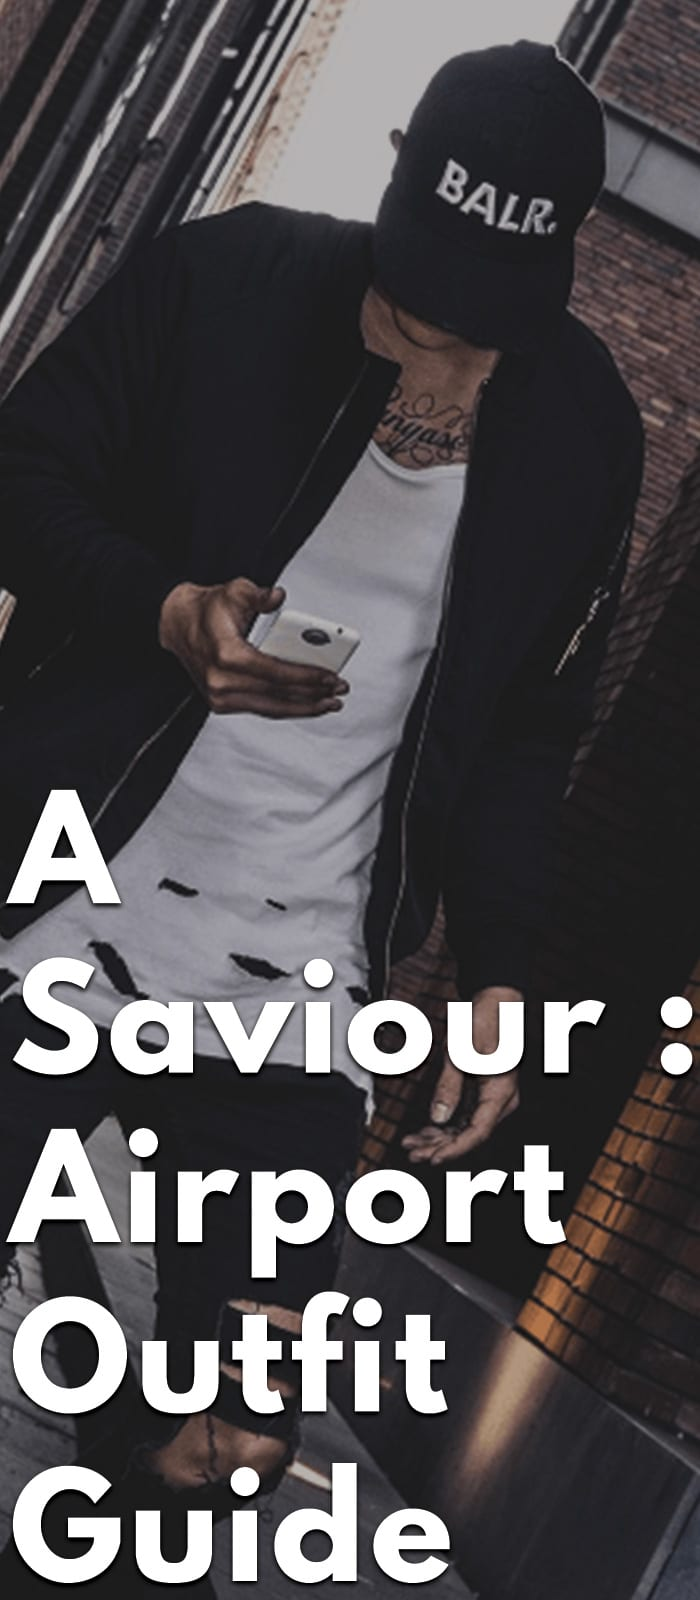 A-Saviour--Airport-Outfit-Guide